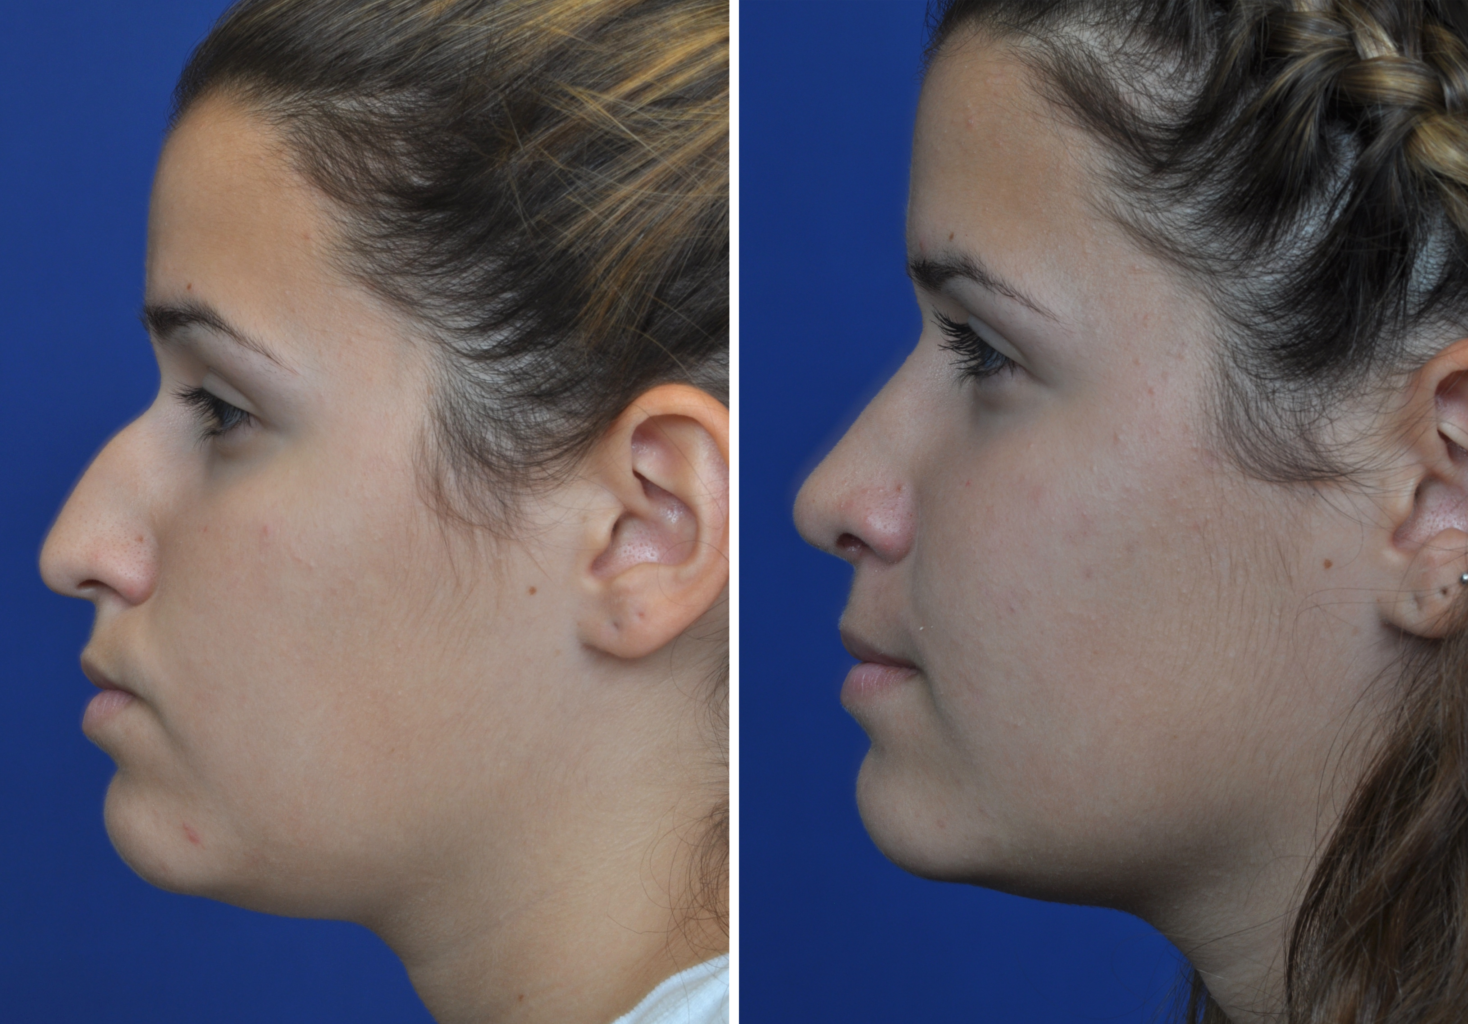 before and after Septorhinoplasty in Annapolis